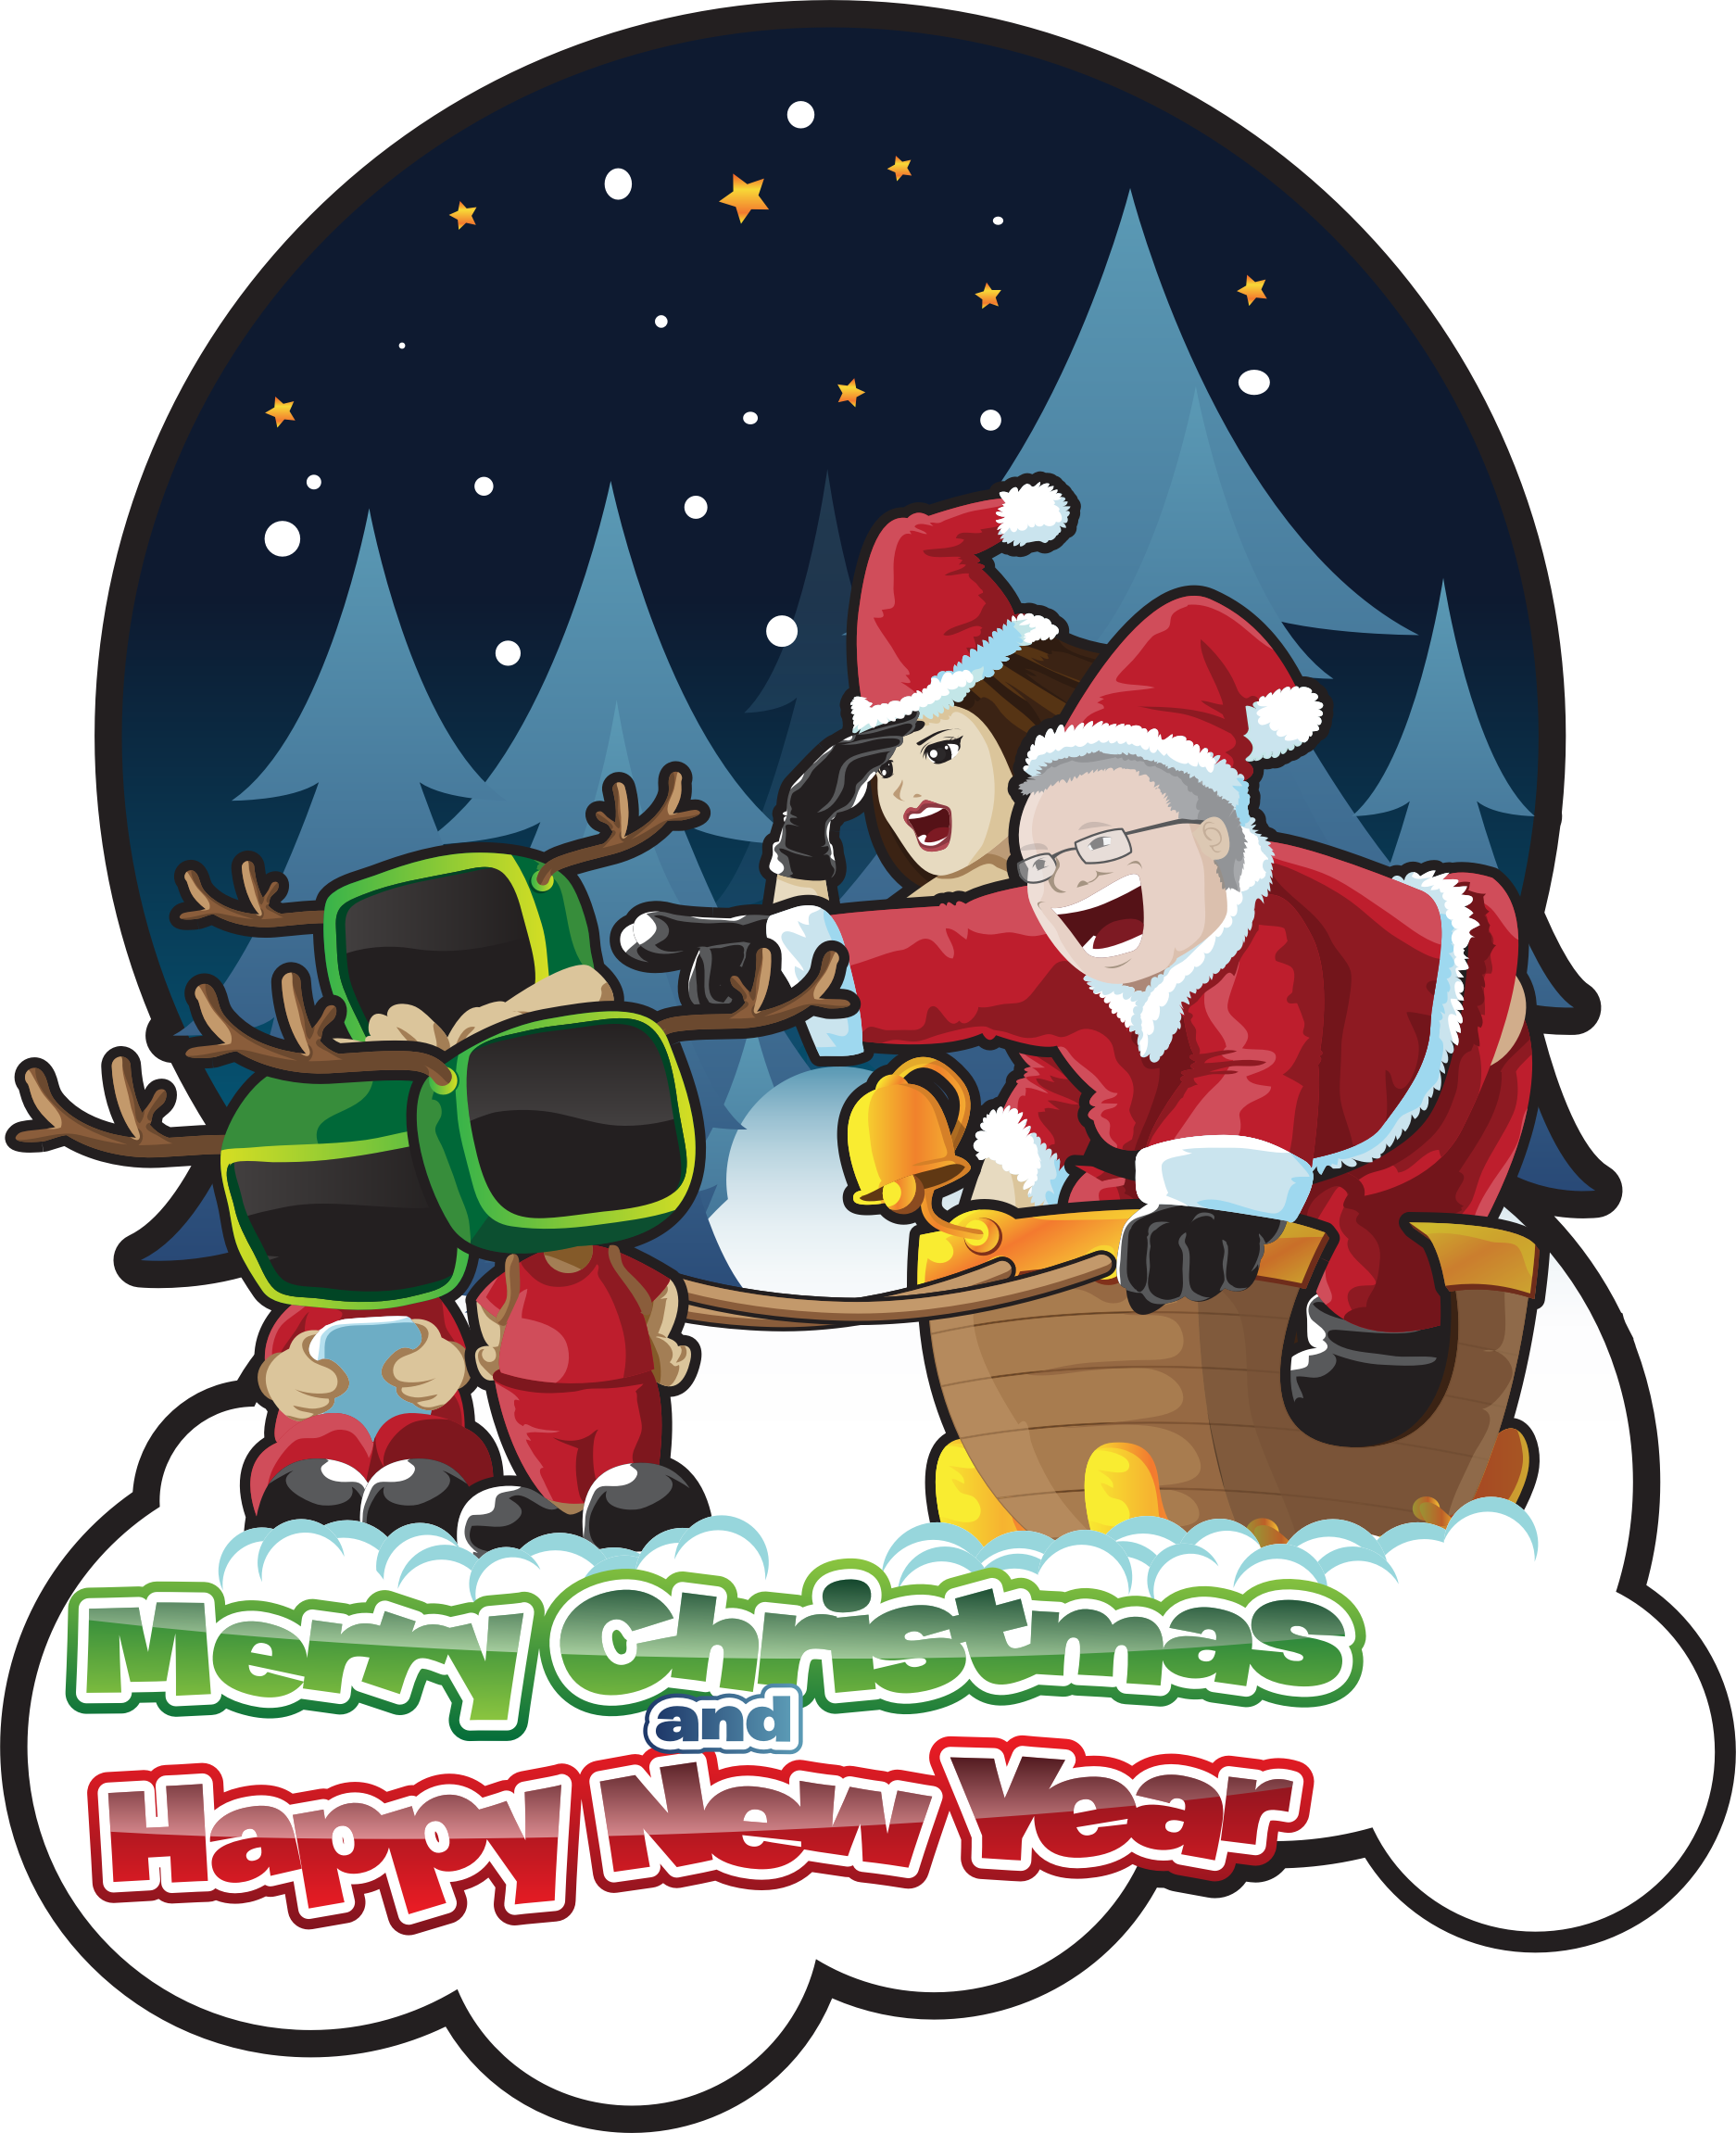 Merry Christmas And Happy New Year by GDJ